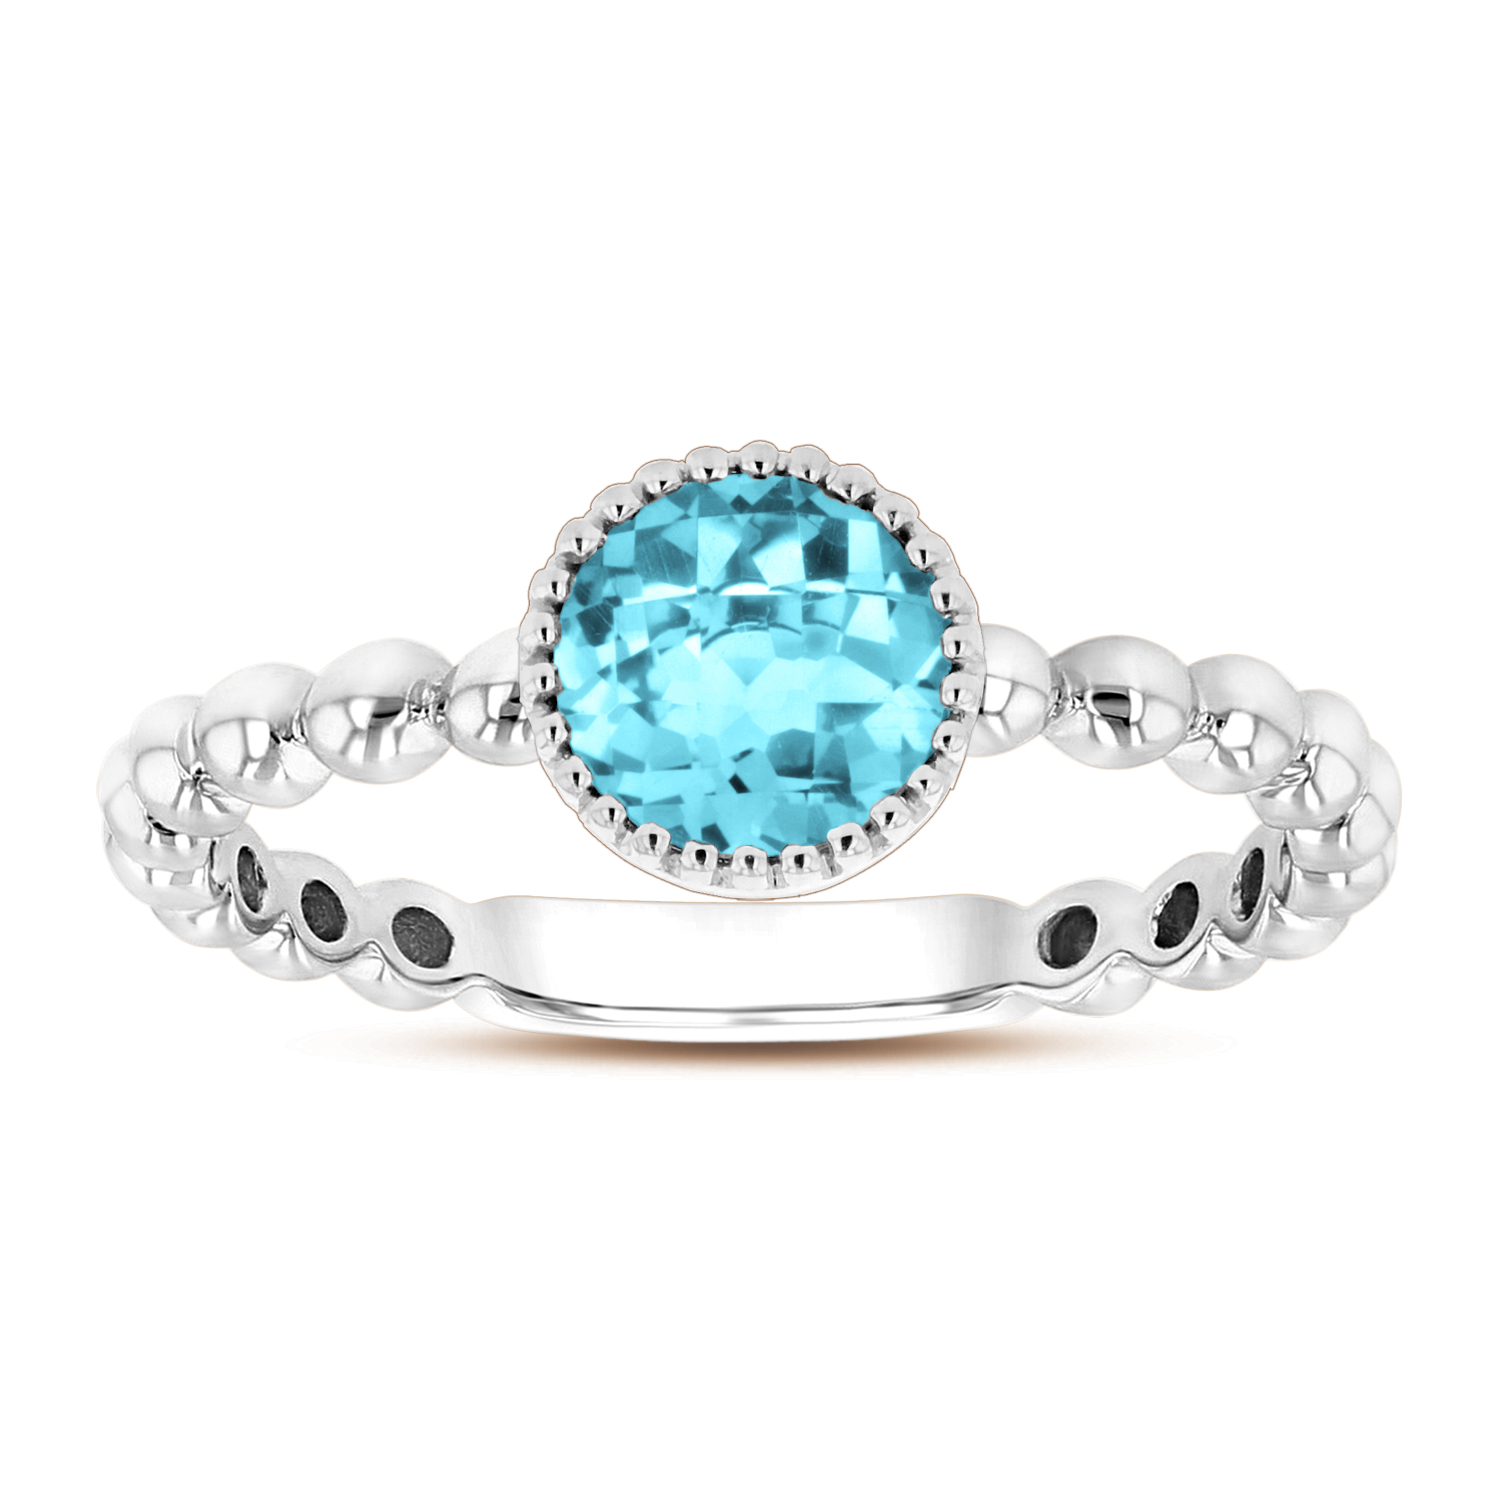 View 6mm Round Blue Topaz Ring in 14k Gold